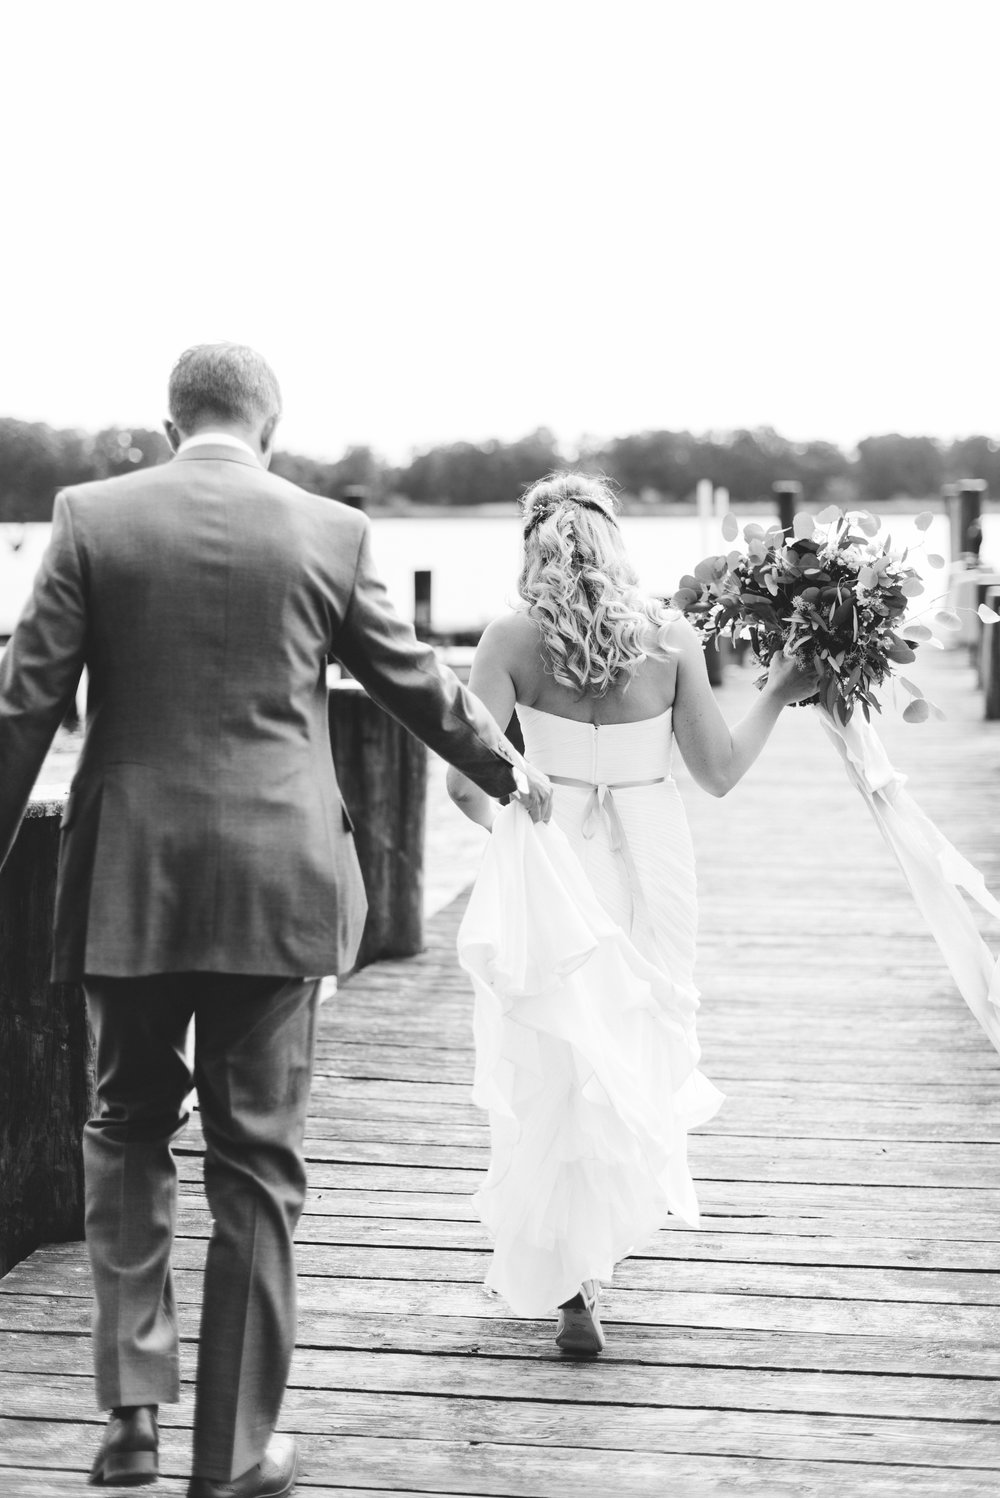 Rustic Oyster Themed Eastern Shore Maryland Outdoor Wedding by East Made Event Company Wedding Planner and Bekah Kay Creative238.jpg